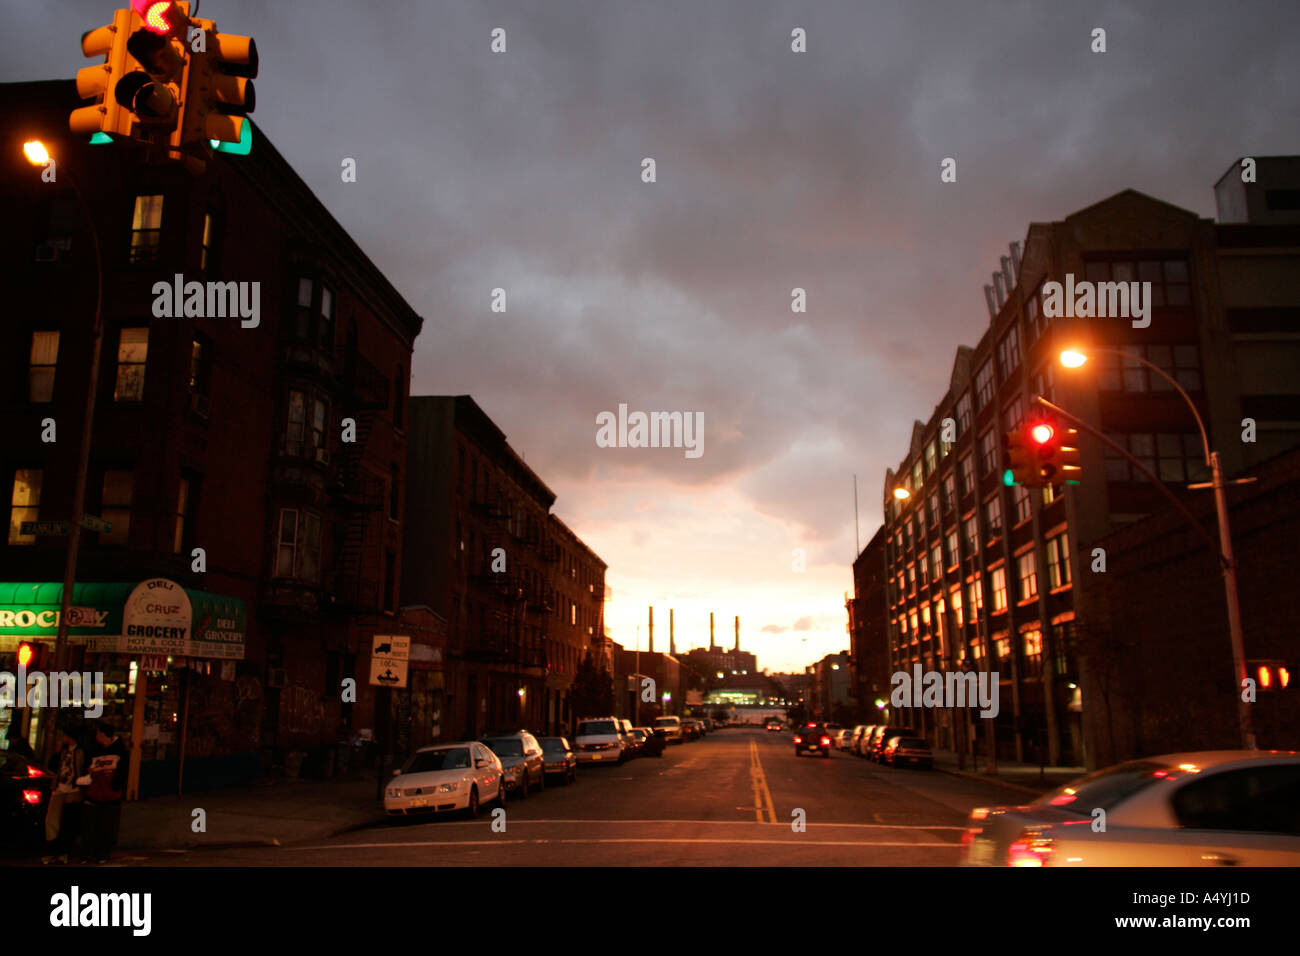 Intersection at night Greenpoint Avenue and Kent Street Brooklyn New York US - Stock Image